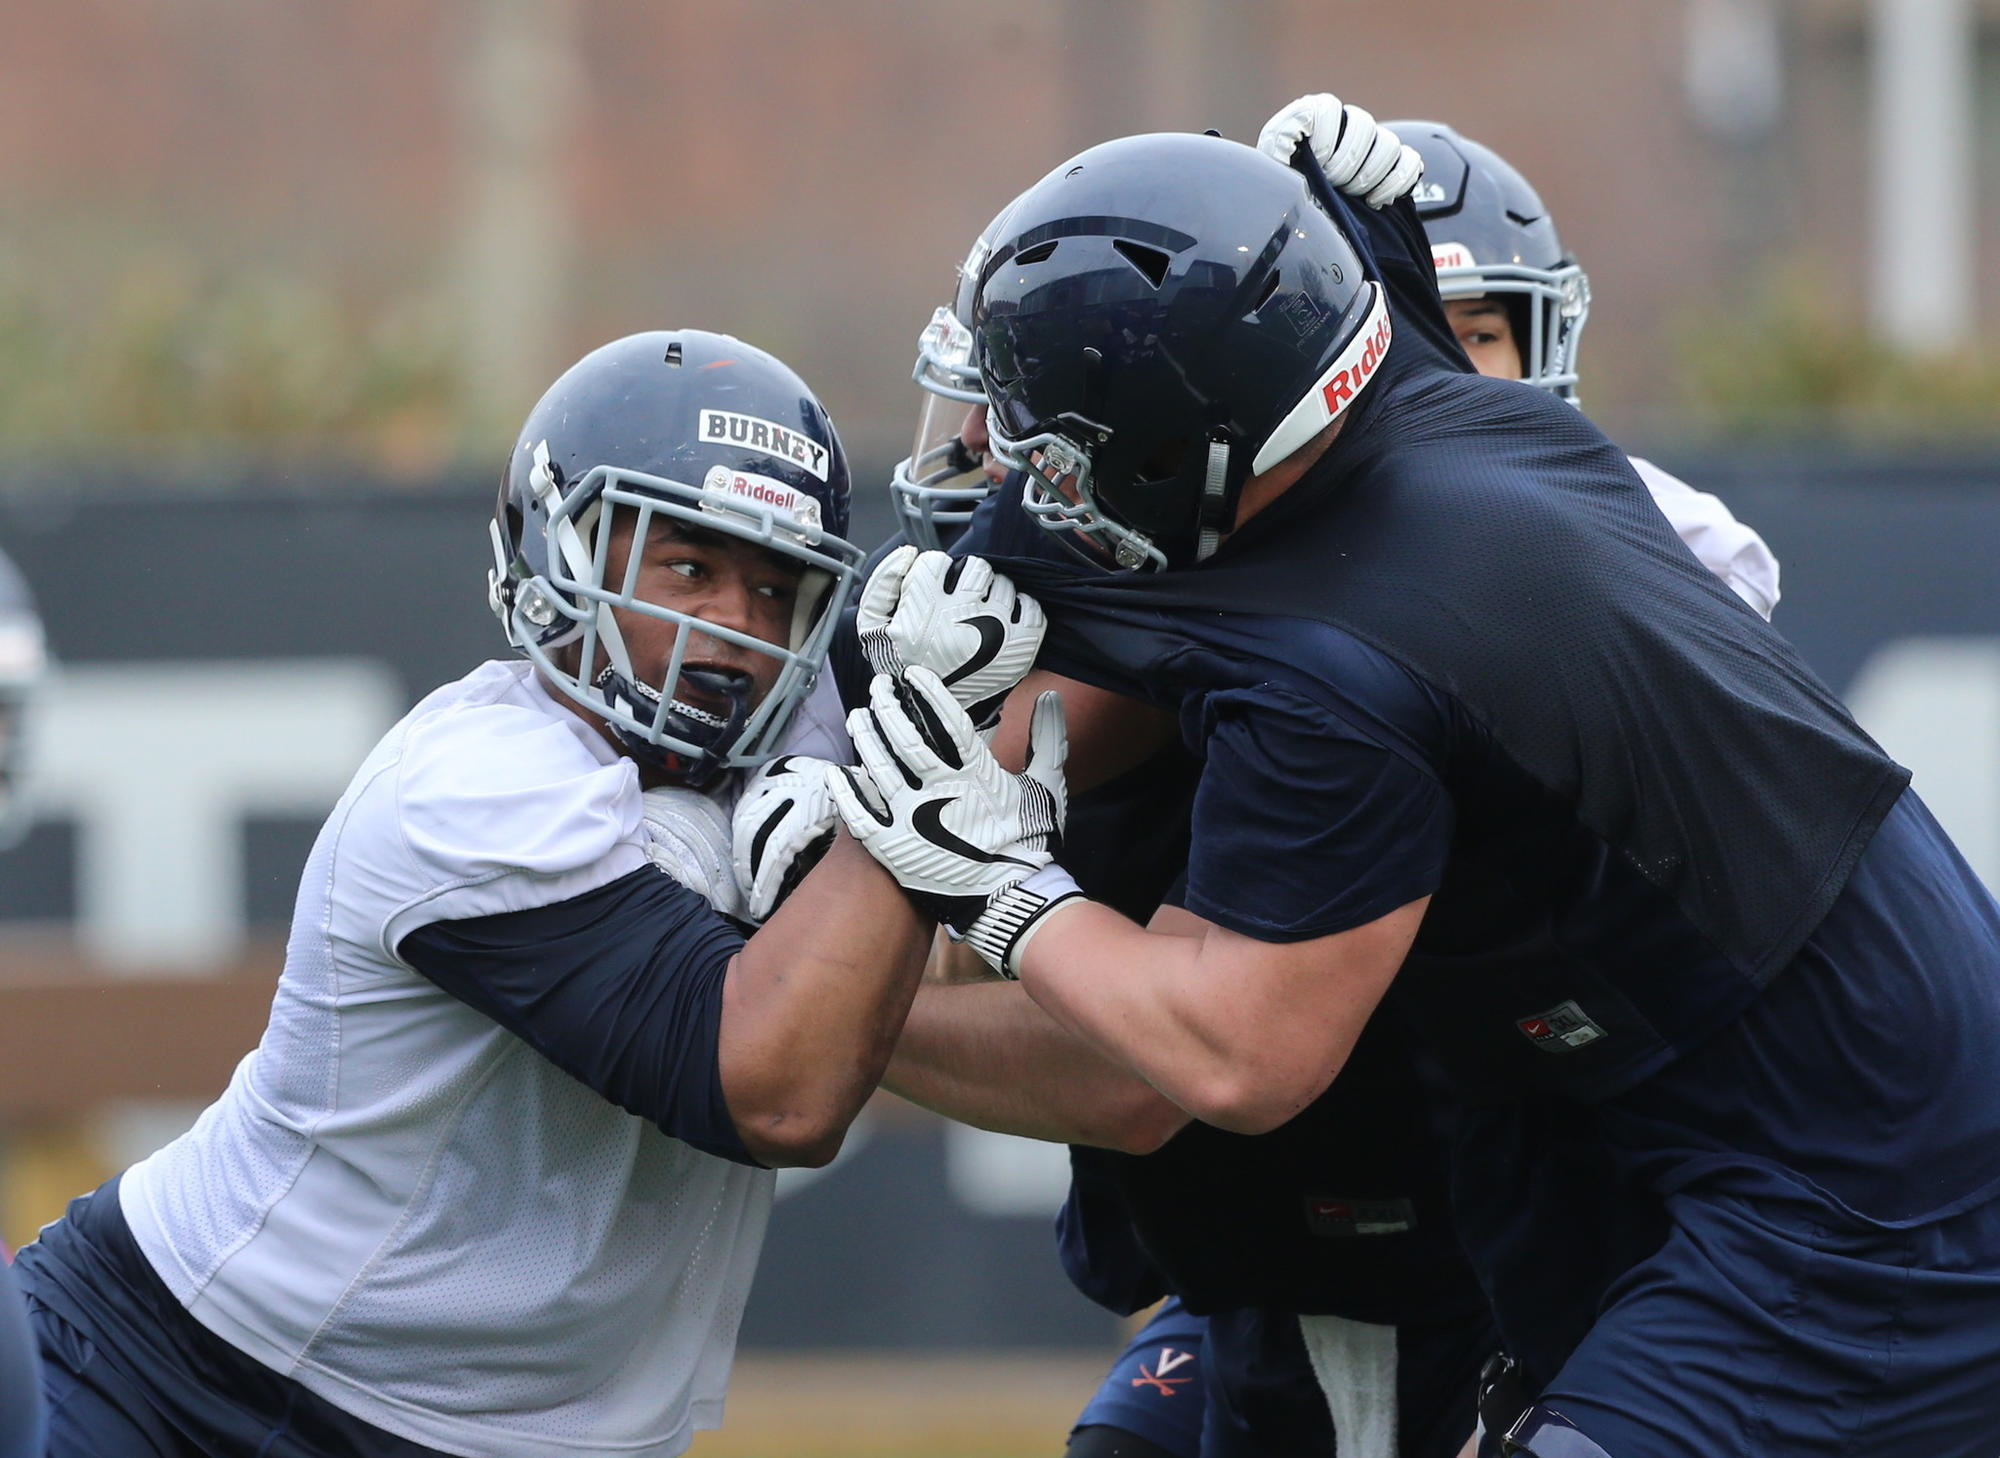 Dp-spt-richard-burney-uva-football-spring-0417